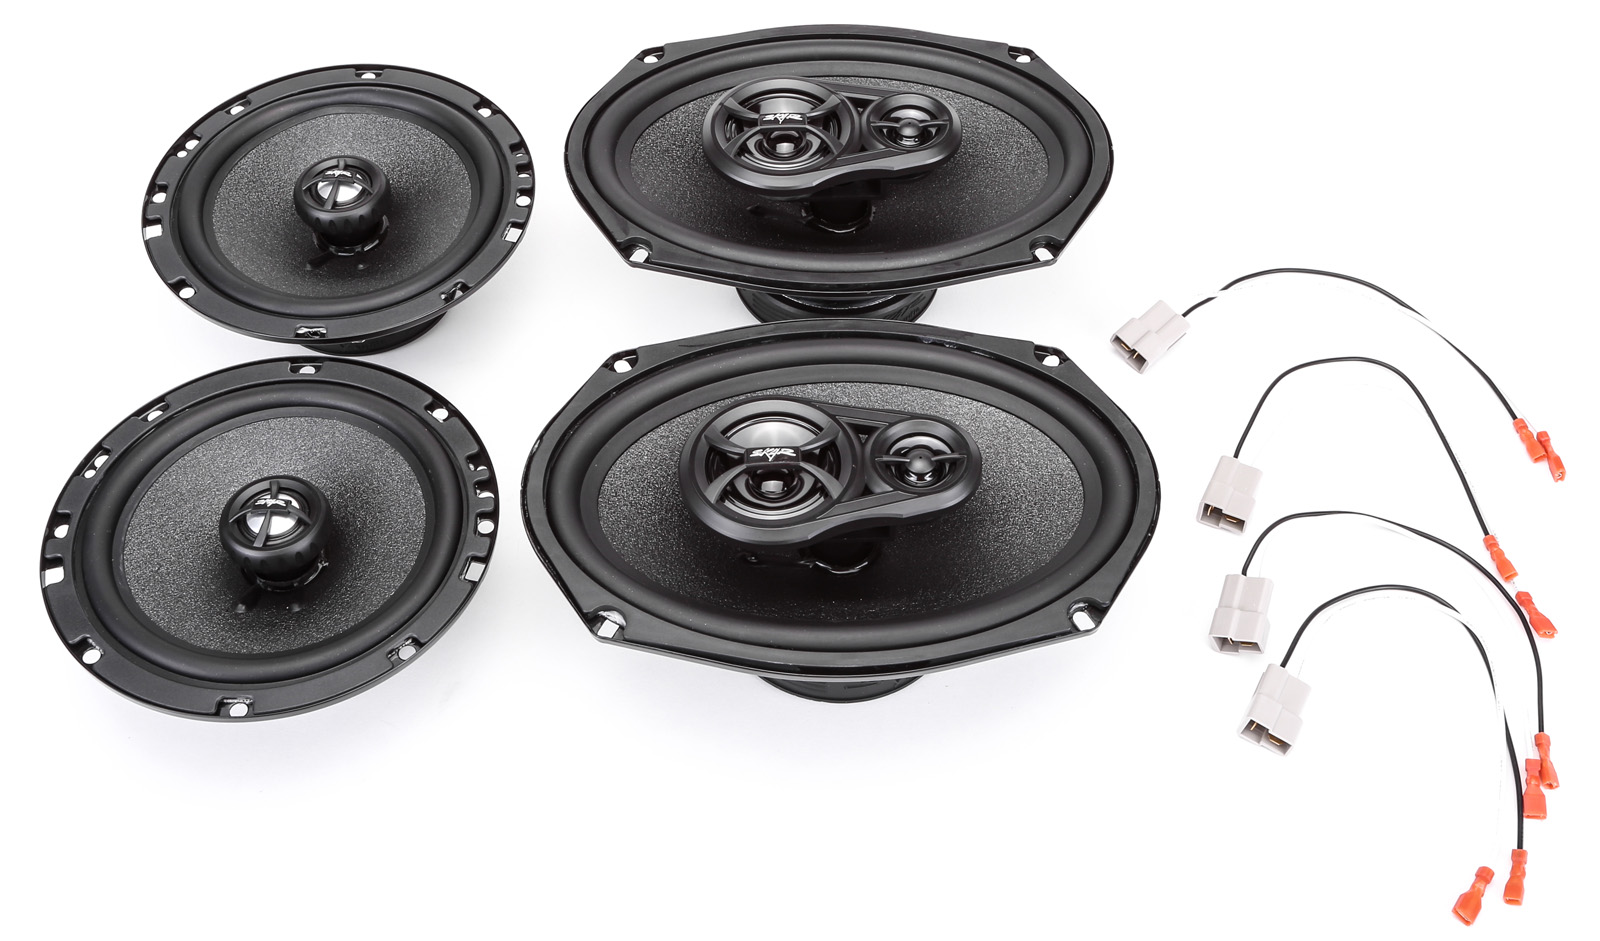 2000-2005 Mitsubishi Eclipse Complete Factory Replacement Speaker Package by Skar Audio by Skar Audio